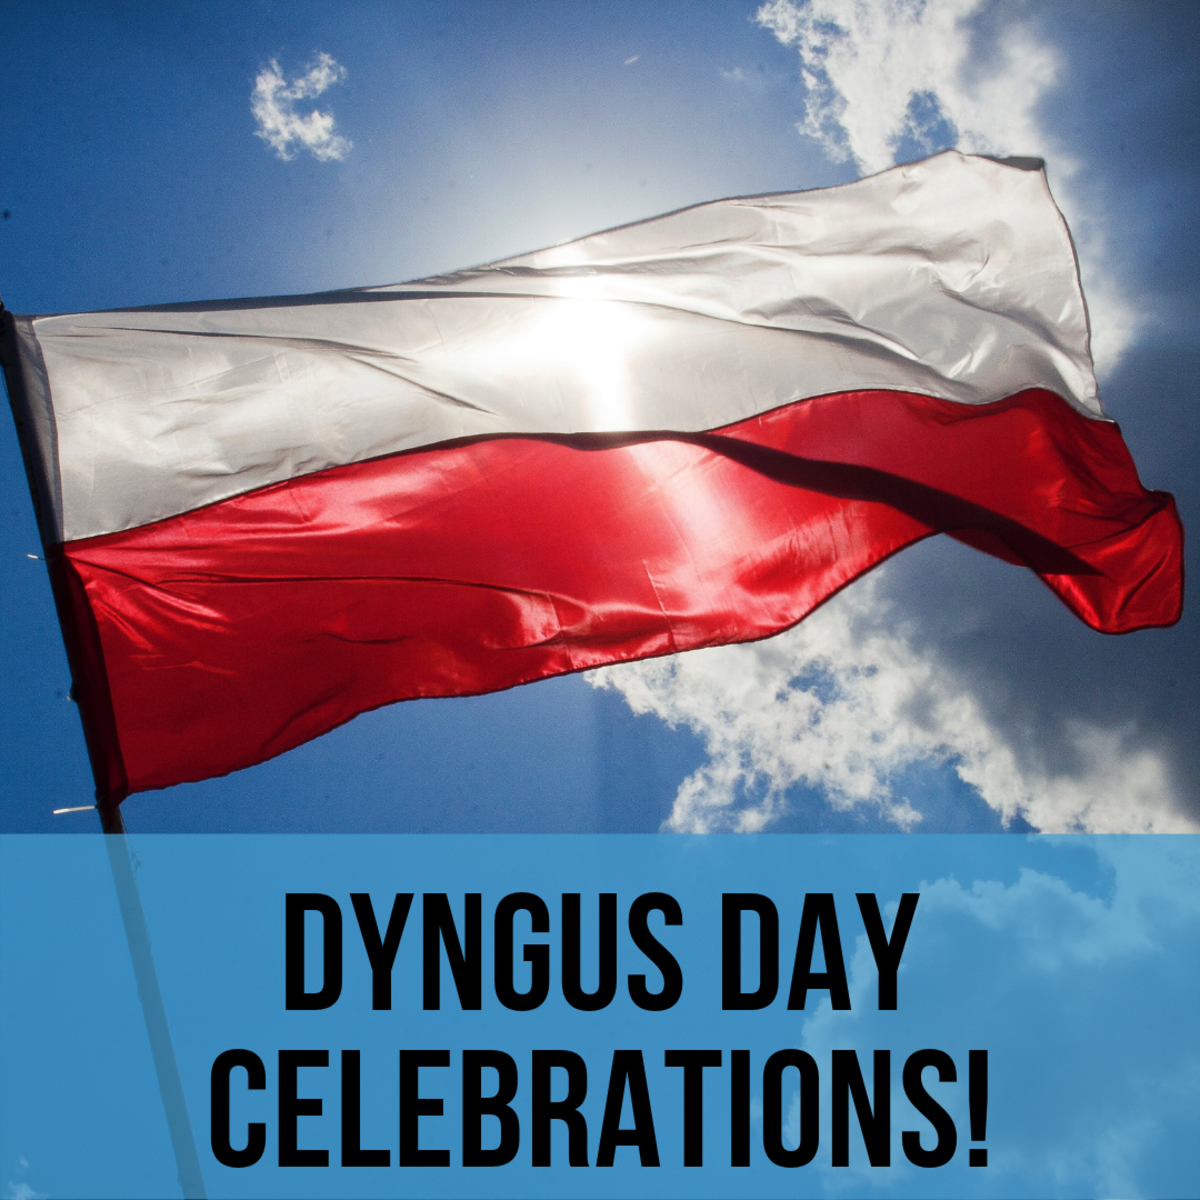 The red and white colors of the Flag of Poland are prominent features of Dyngus Day.